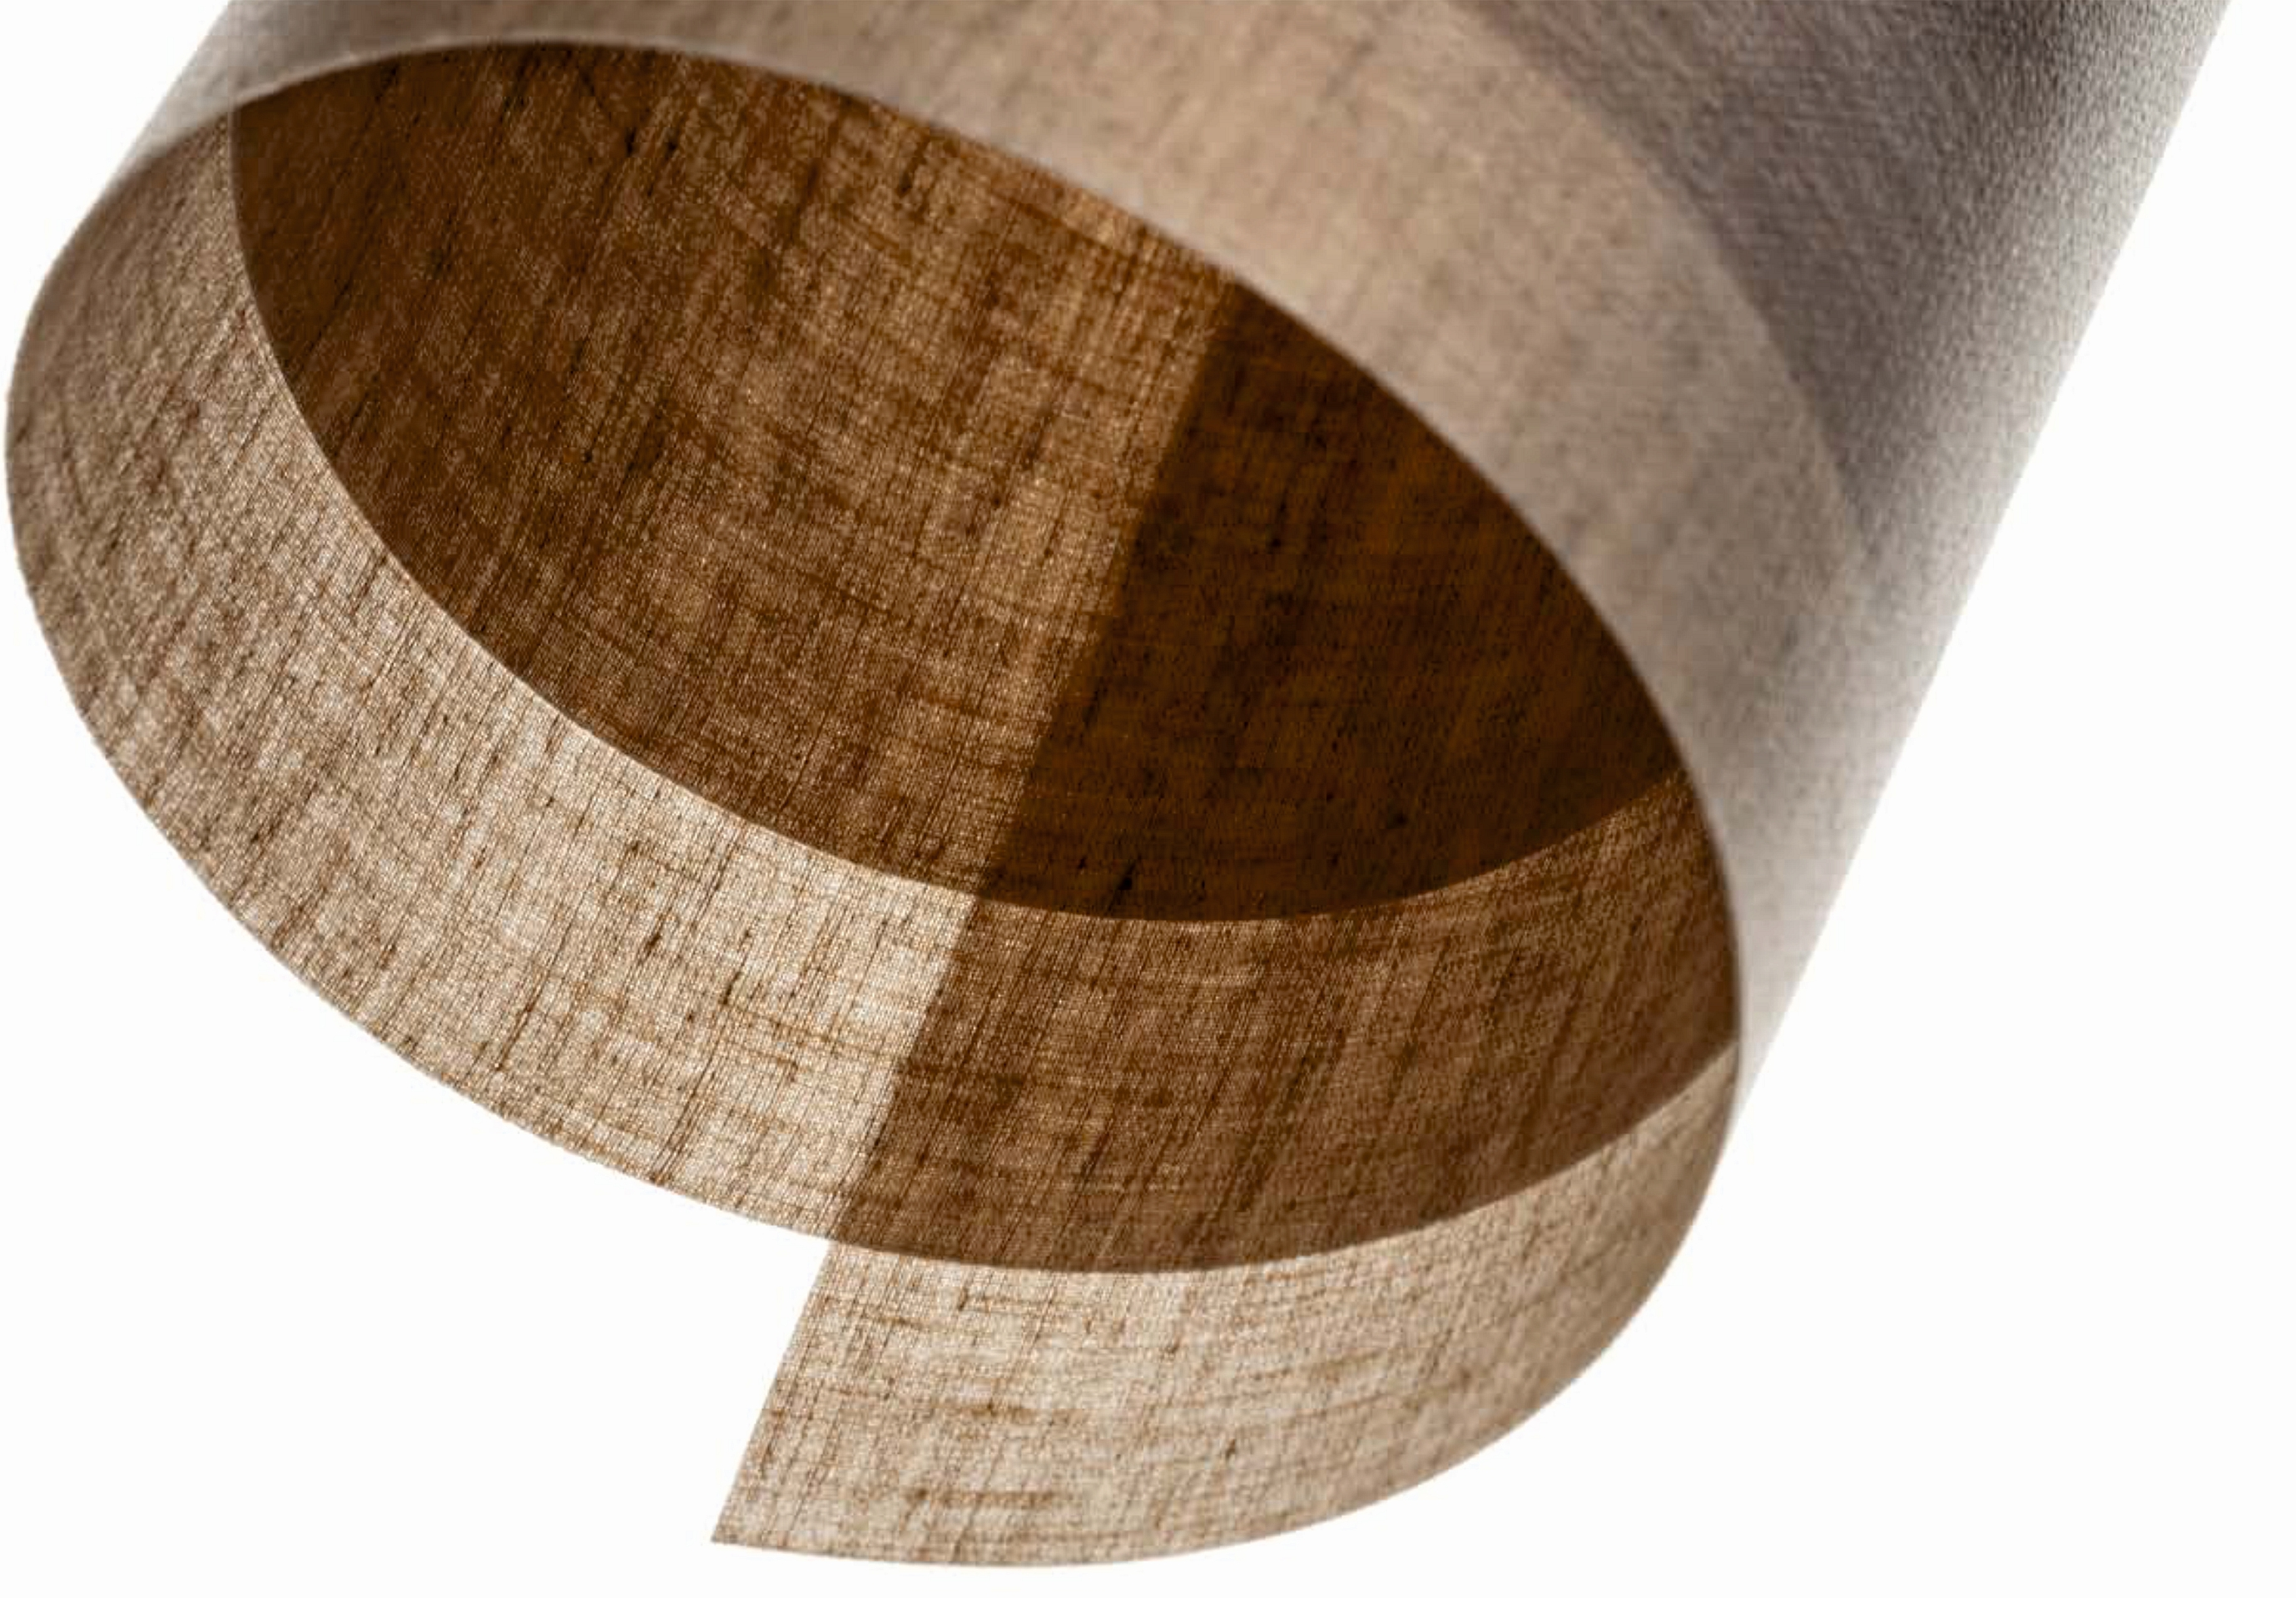 Design Laminate from MeshLin